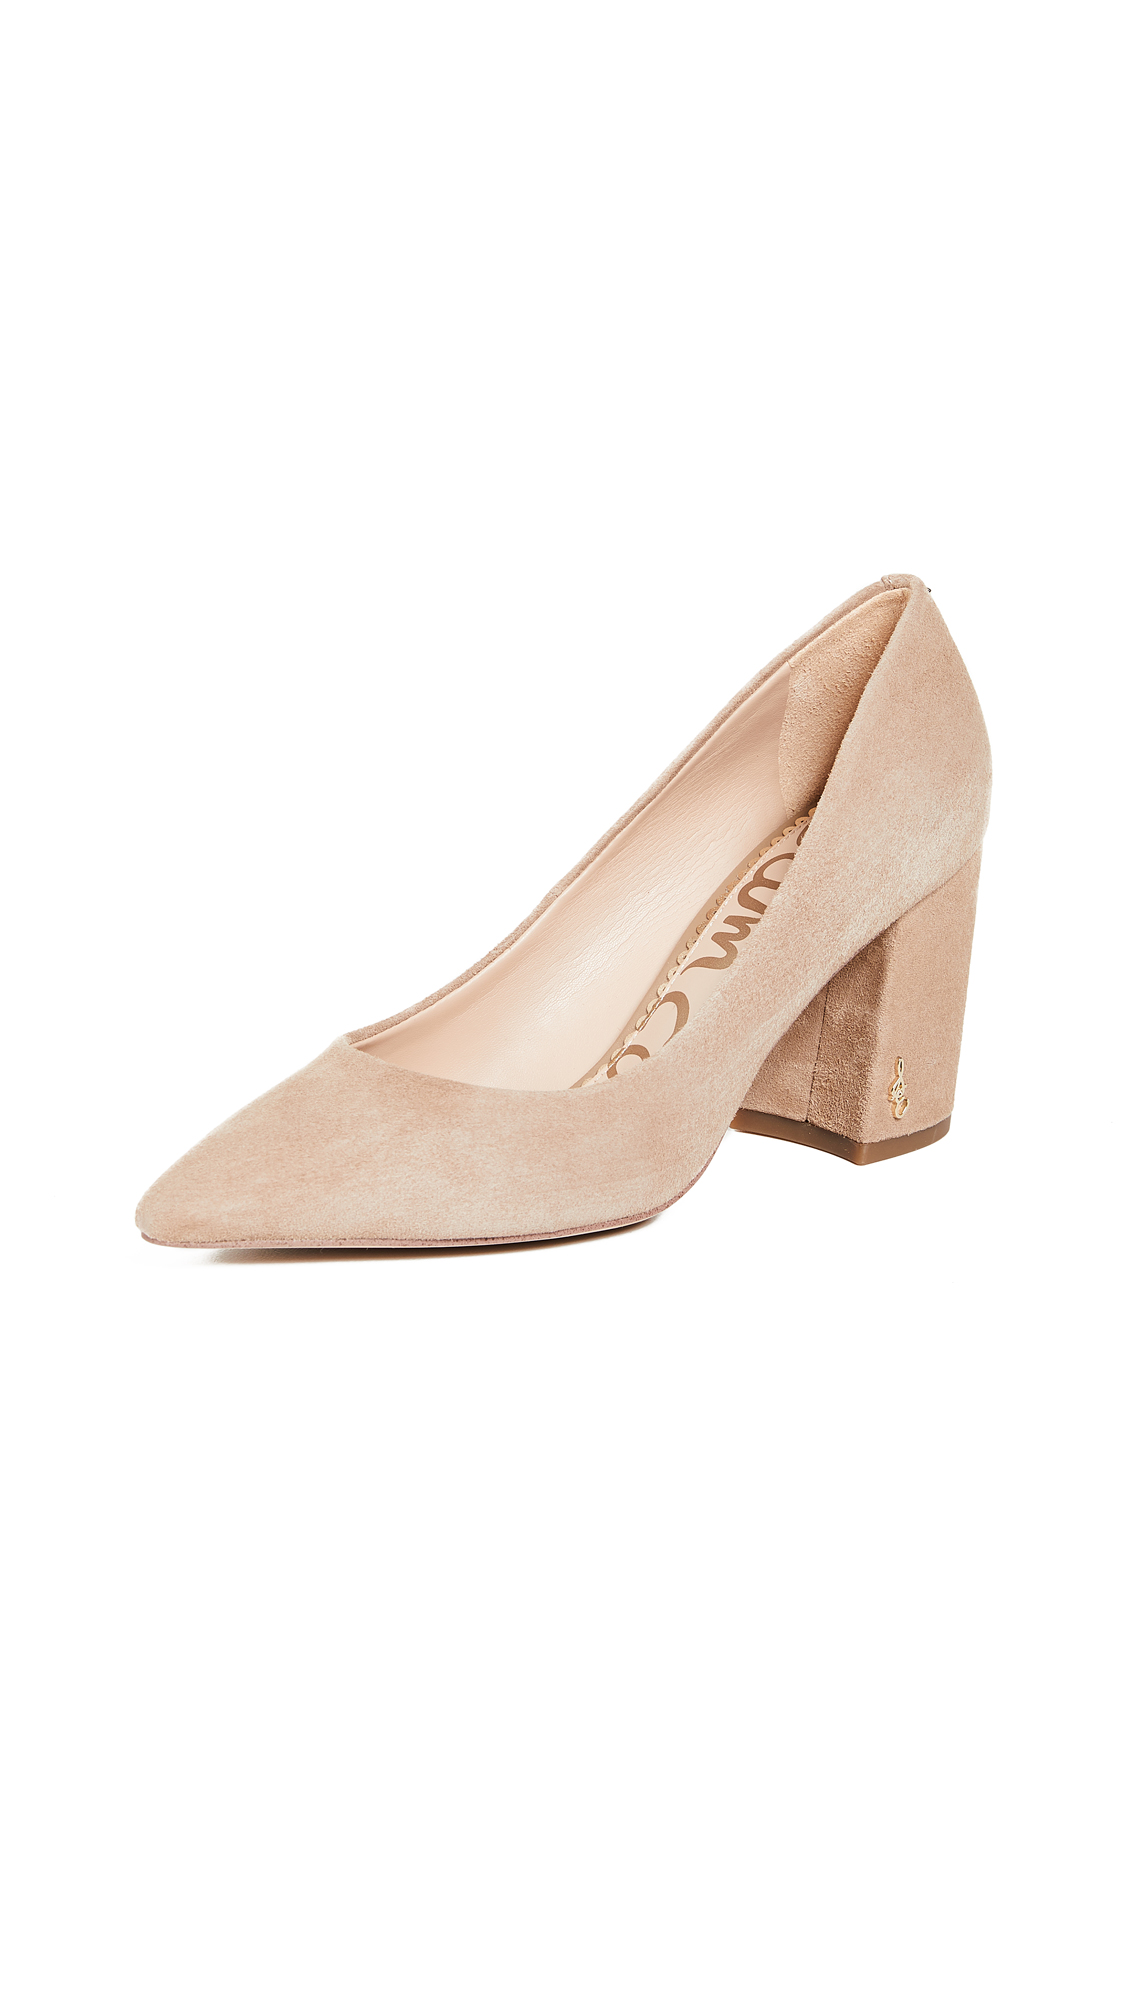 Sam Edelman Tatiana Pumps - Oatmeal